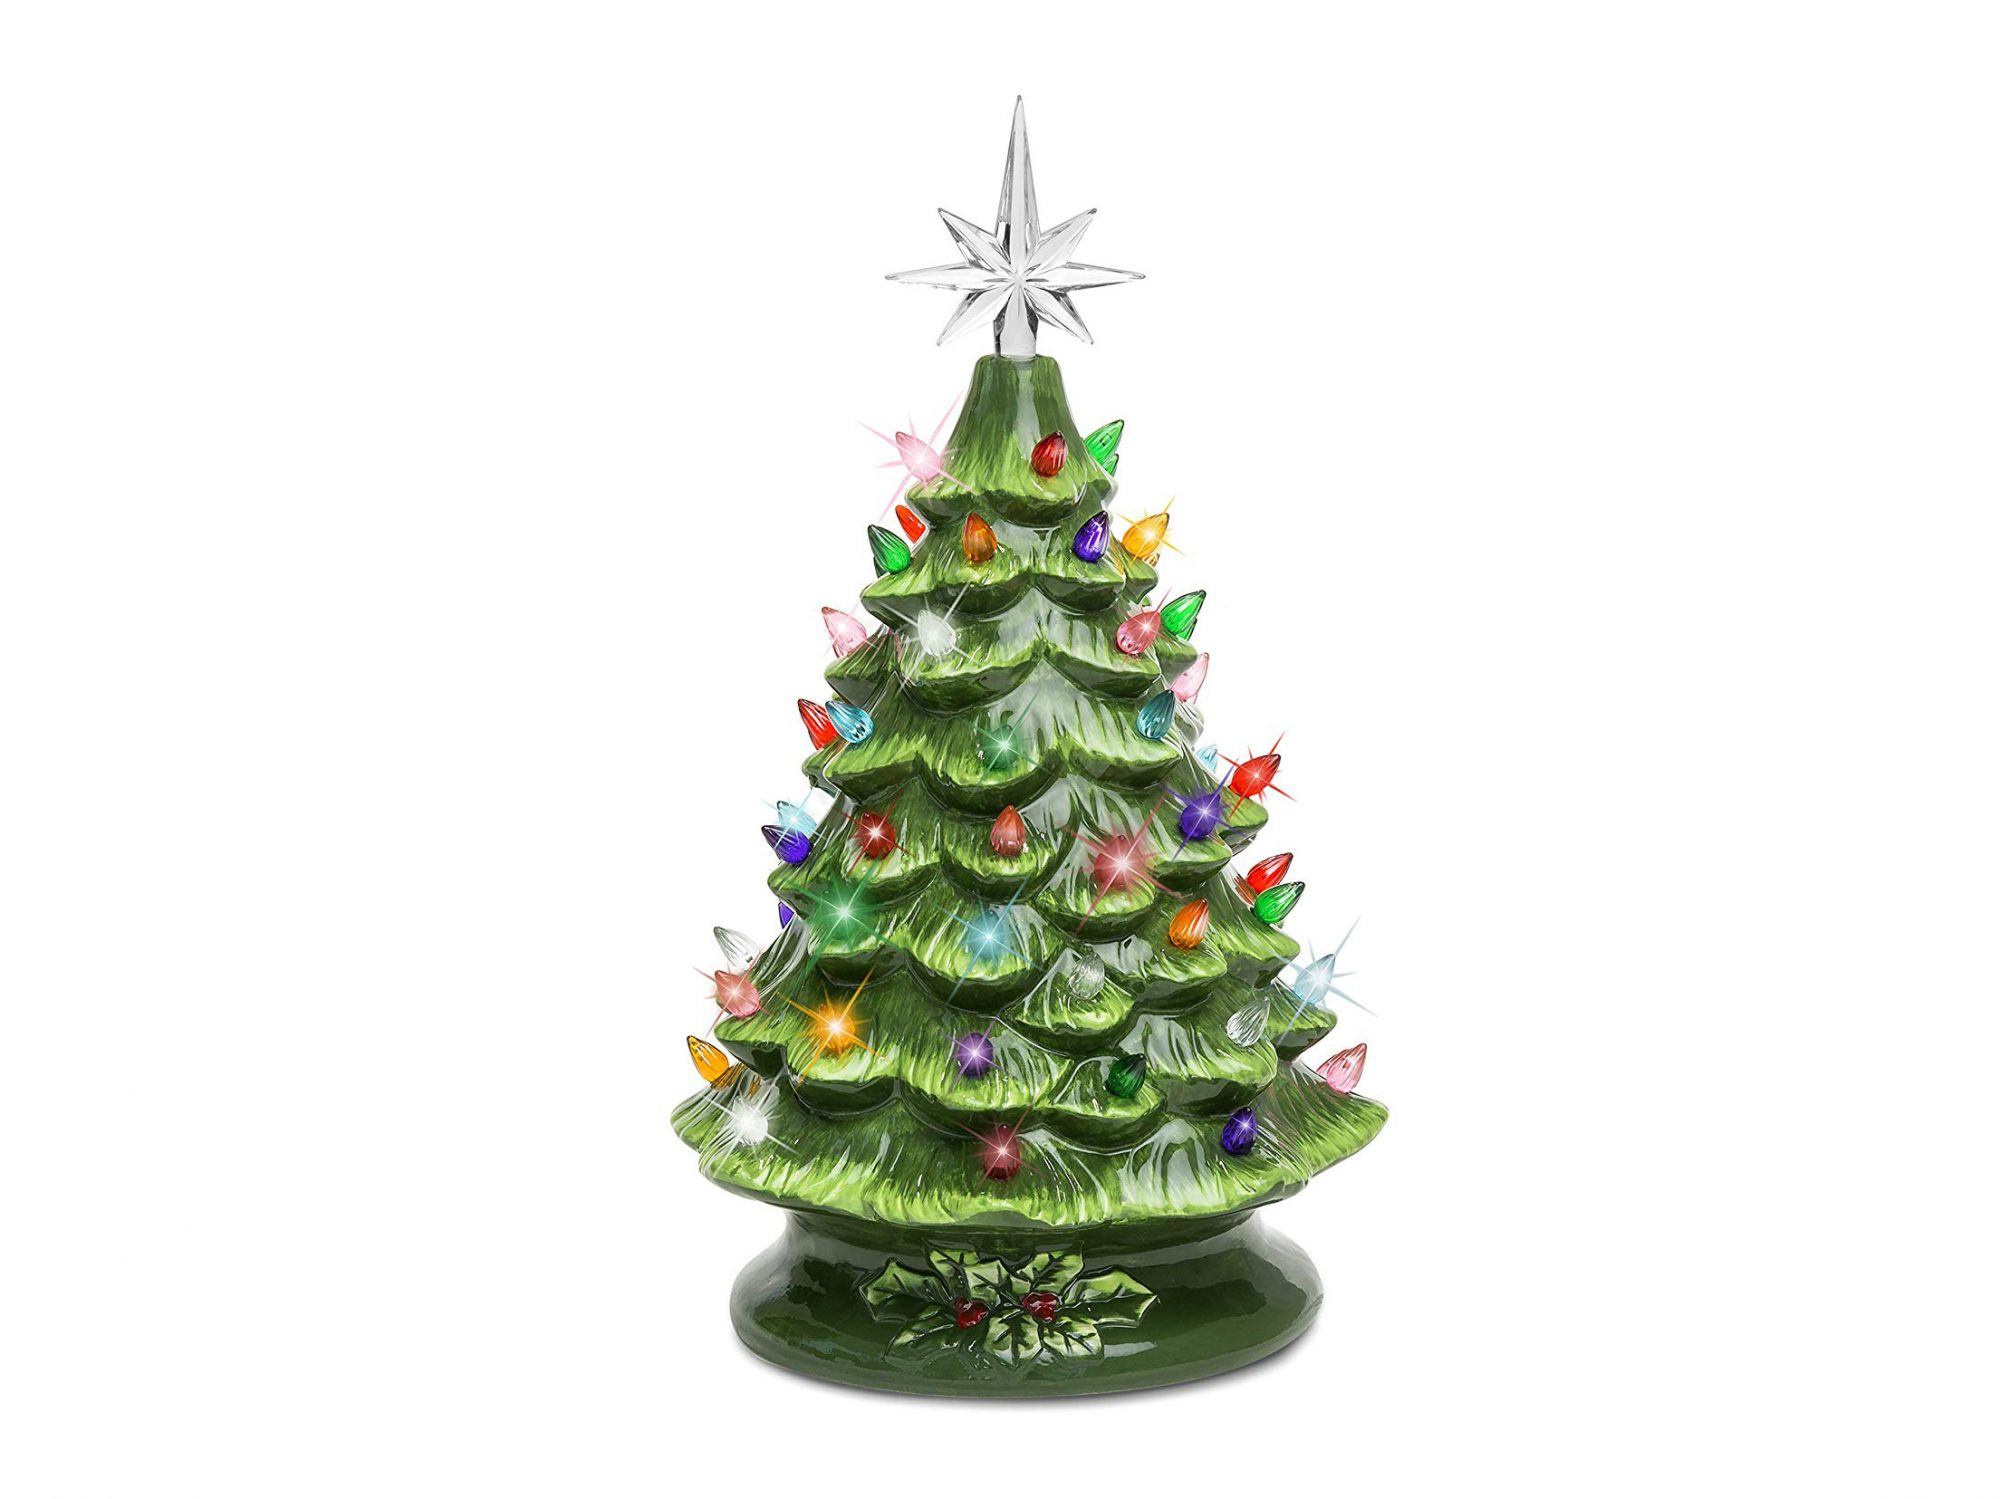 Ceramic Christmas Tree Vintage.Here S Where You Can Buy Vintage Inspired Christmas Trees